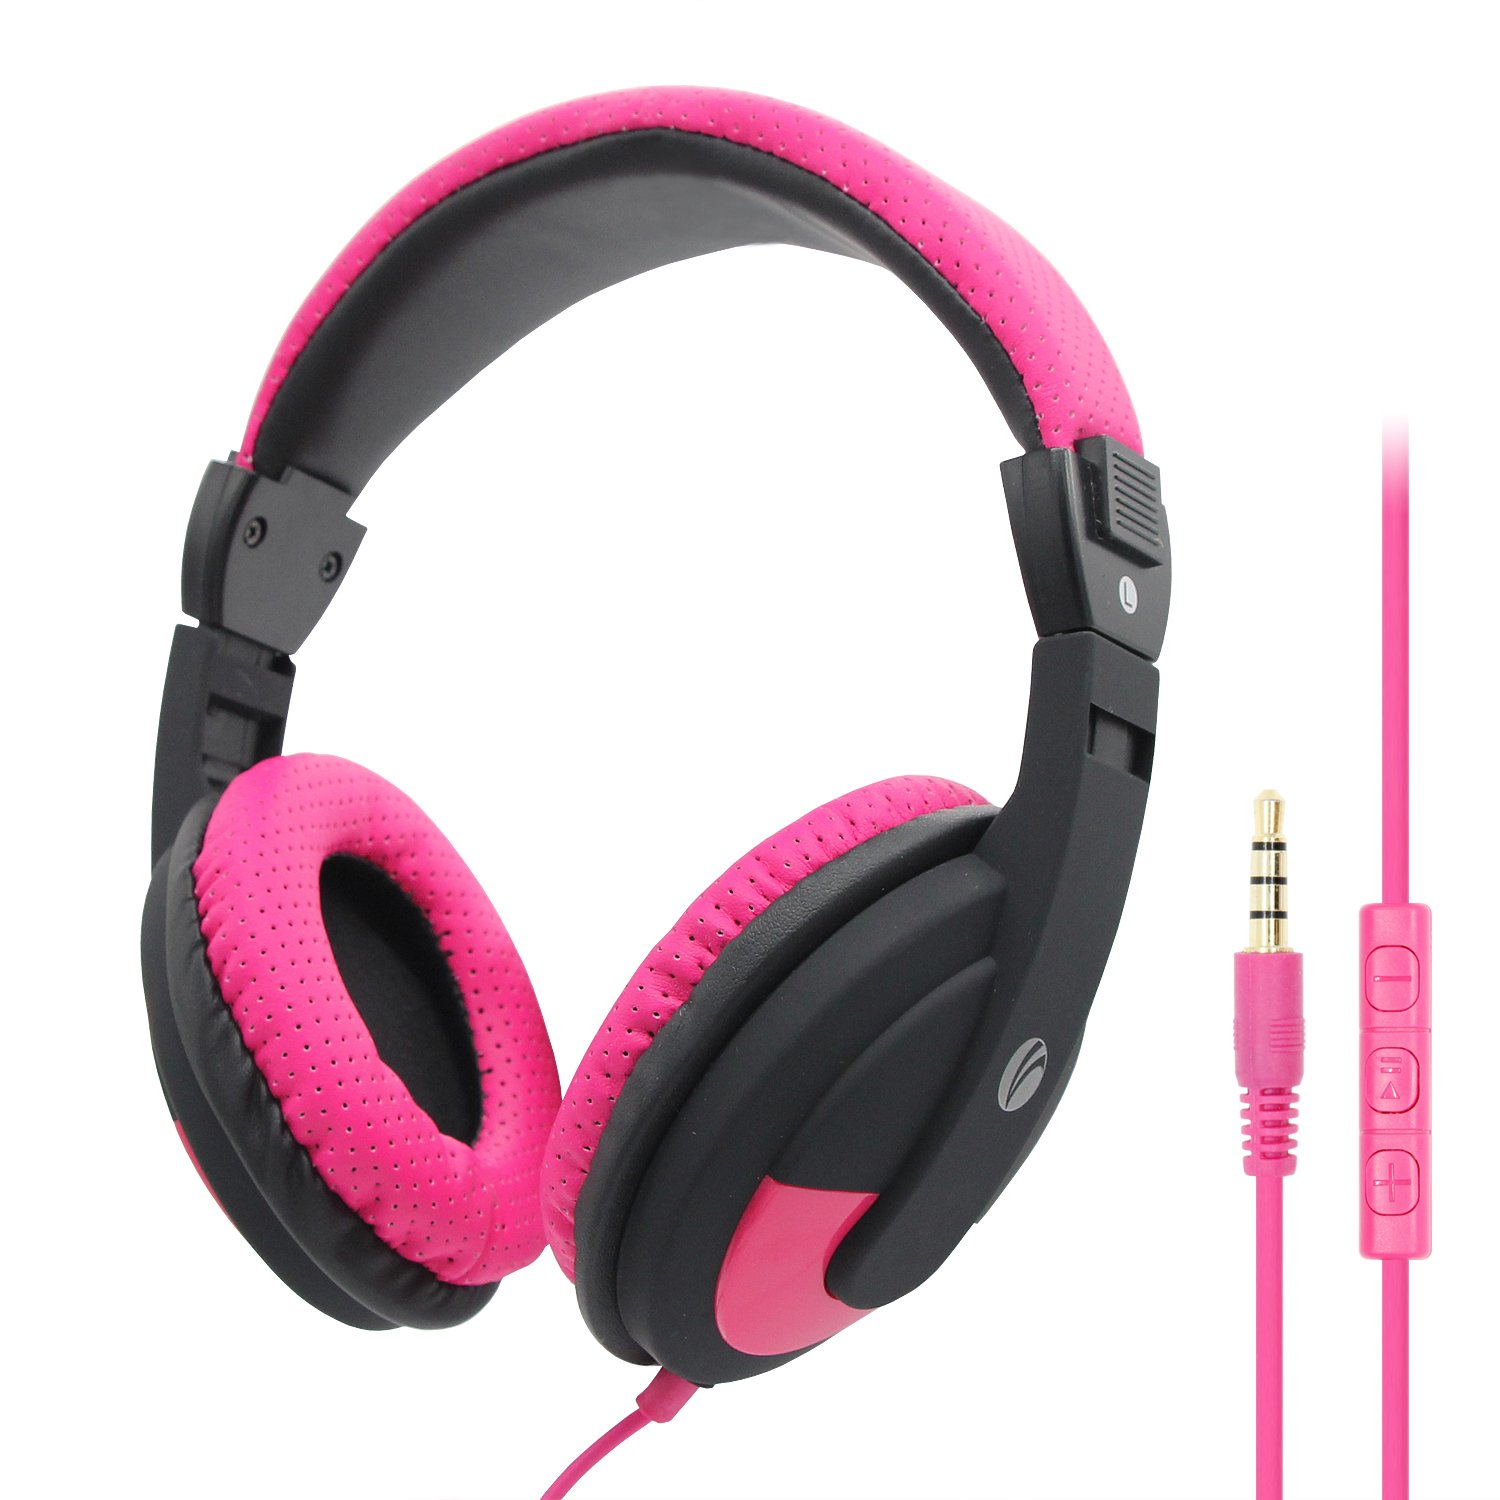 VCOM Stereo Wired PC Headset with Microphone, Lightweight On-Ear Headphones for Adults Students Kids Boys Girls Teens, Compatible for Smartphones Laptop Computer PC PS4 MP3/4 - Pink